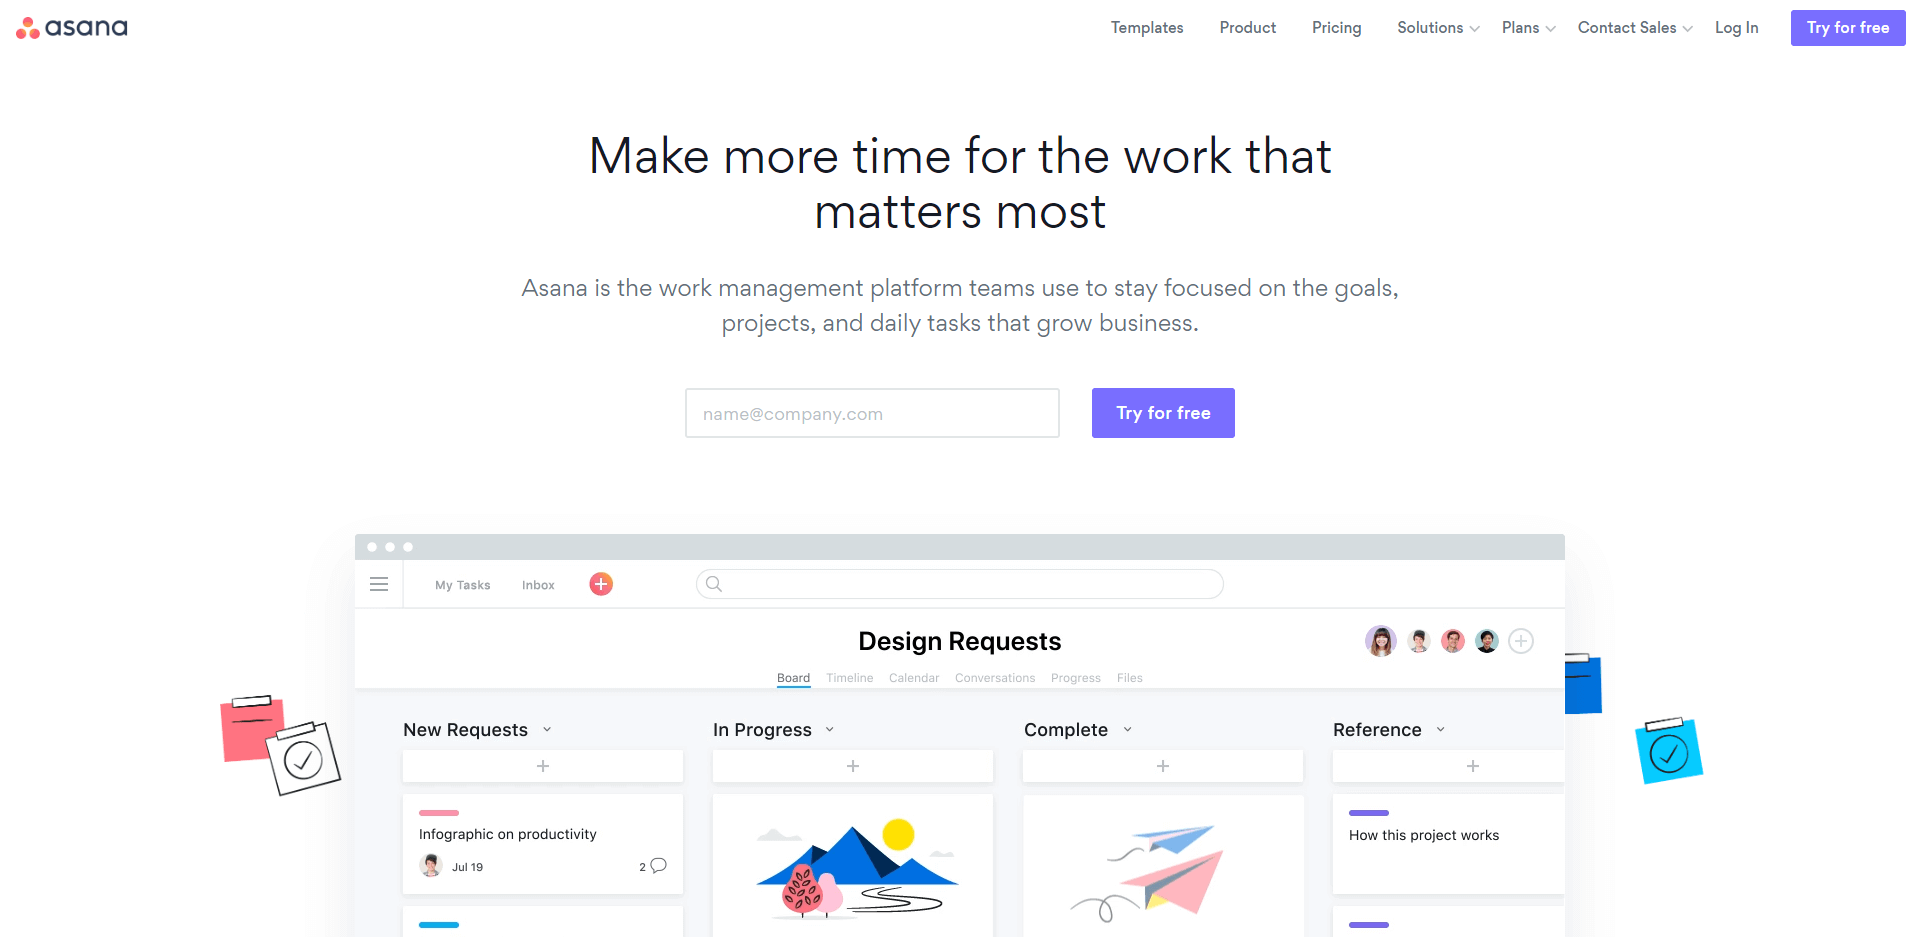 Asana makes more time for the work that matters most